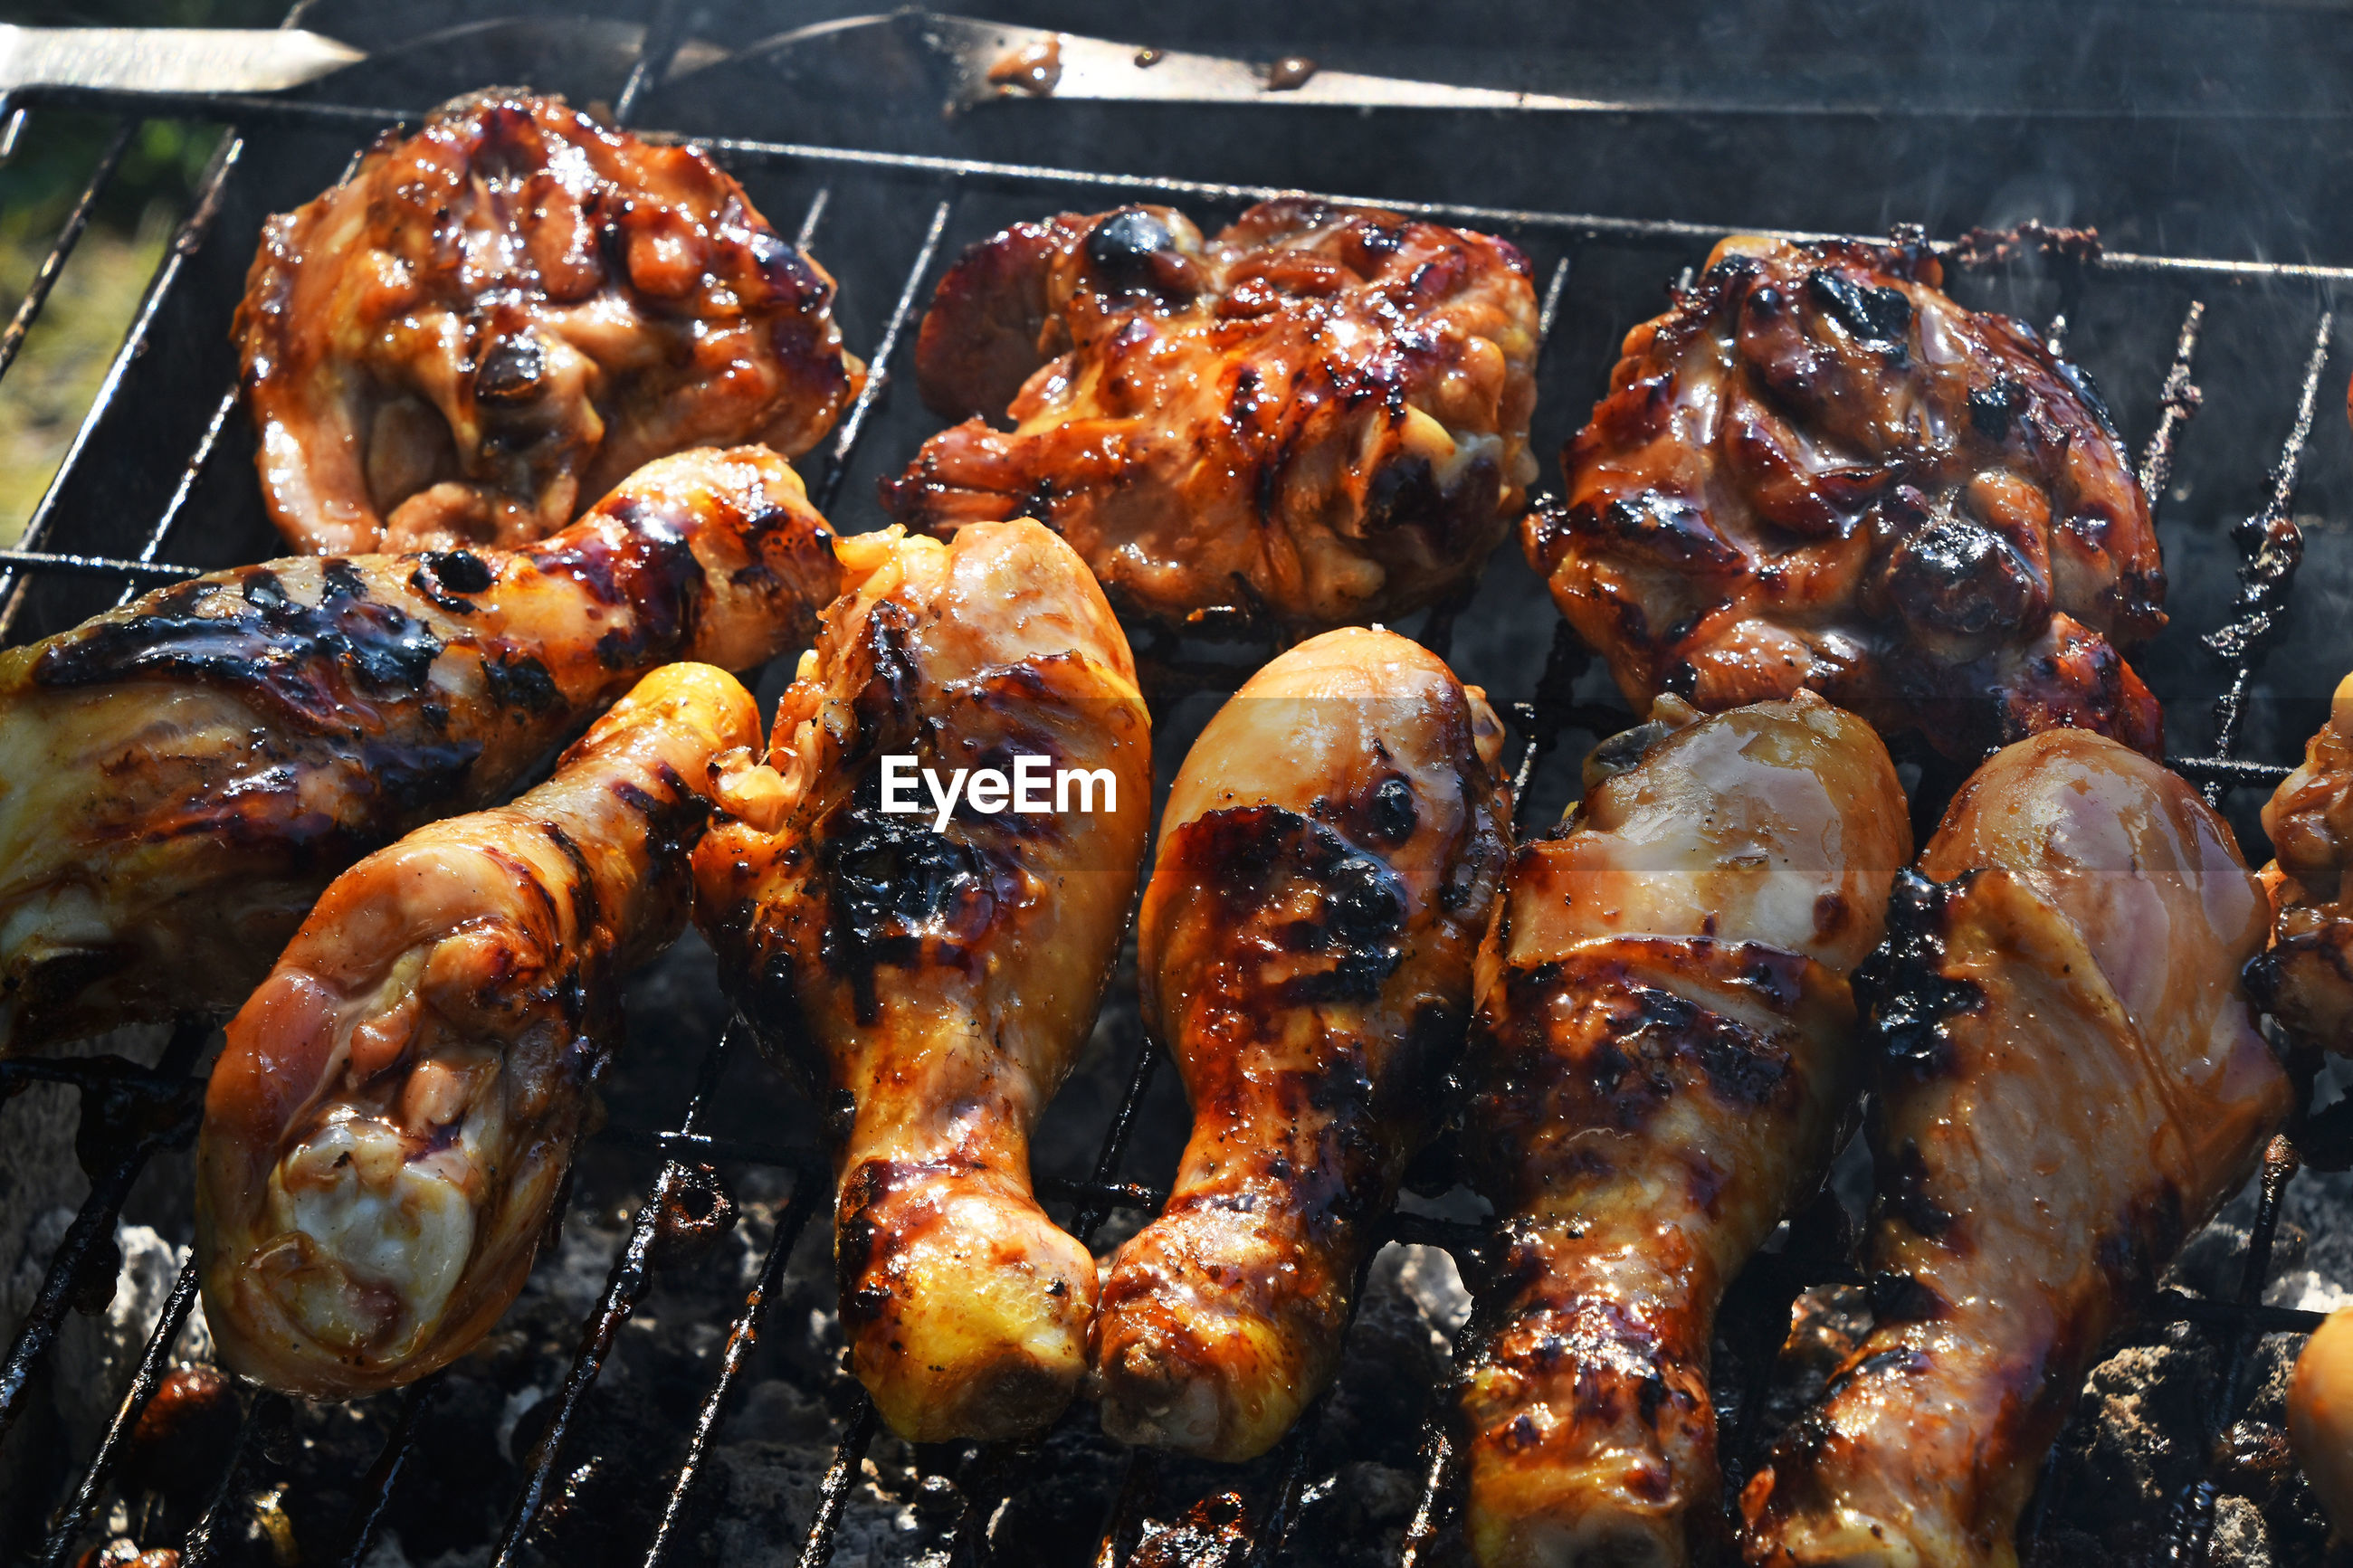 High angle view of chicken cooking on barbecue grill